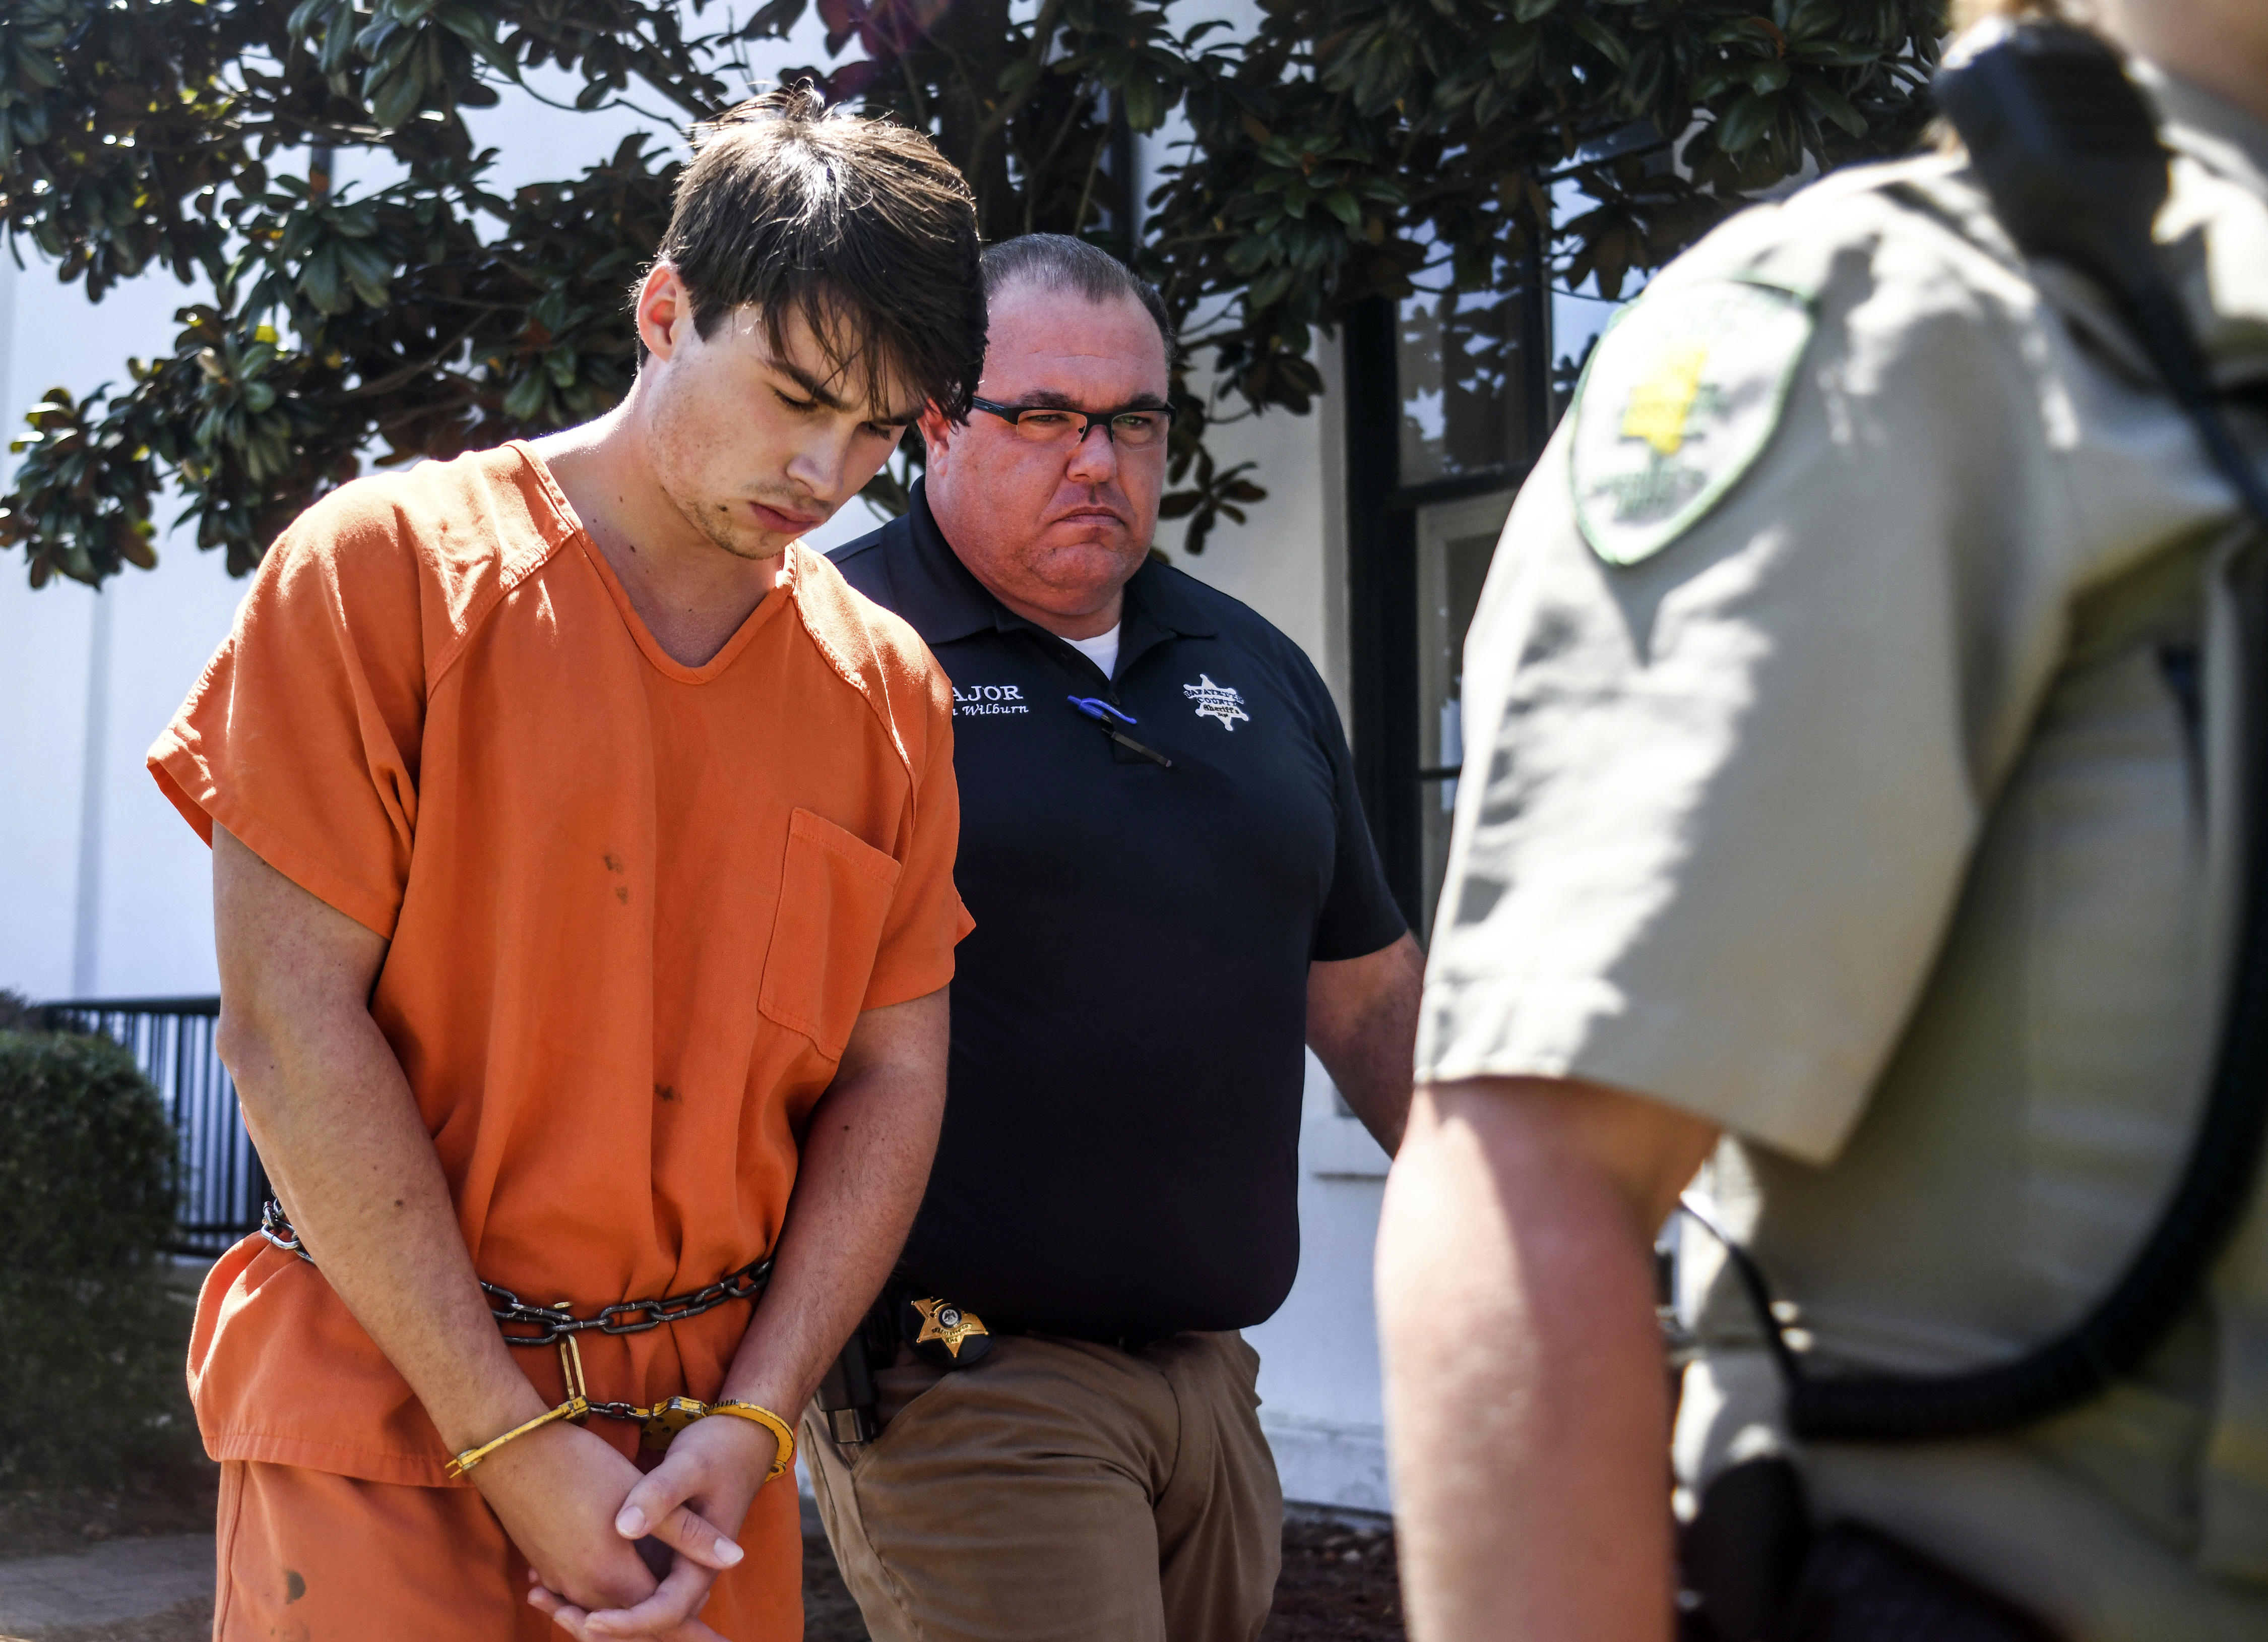 University of Mississippi student charged in womans death